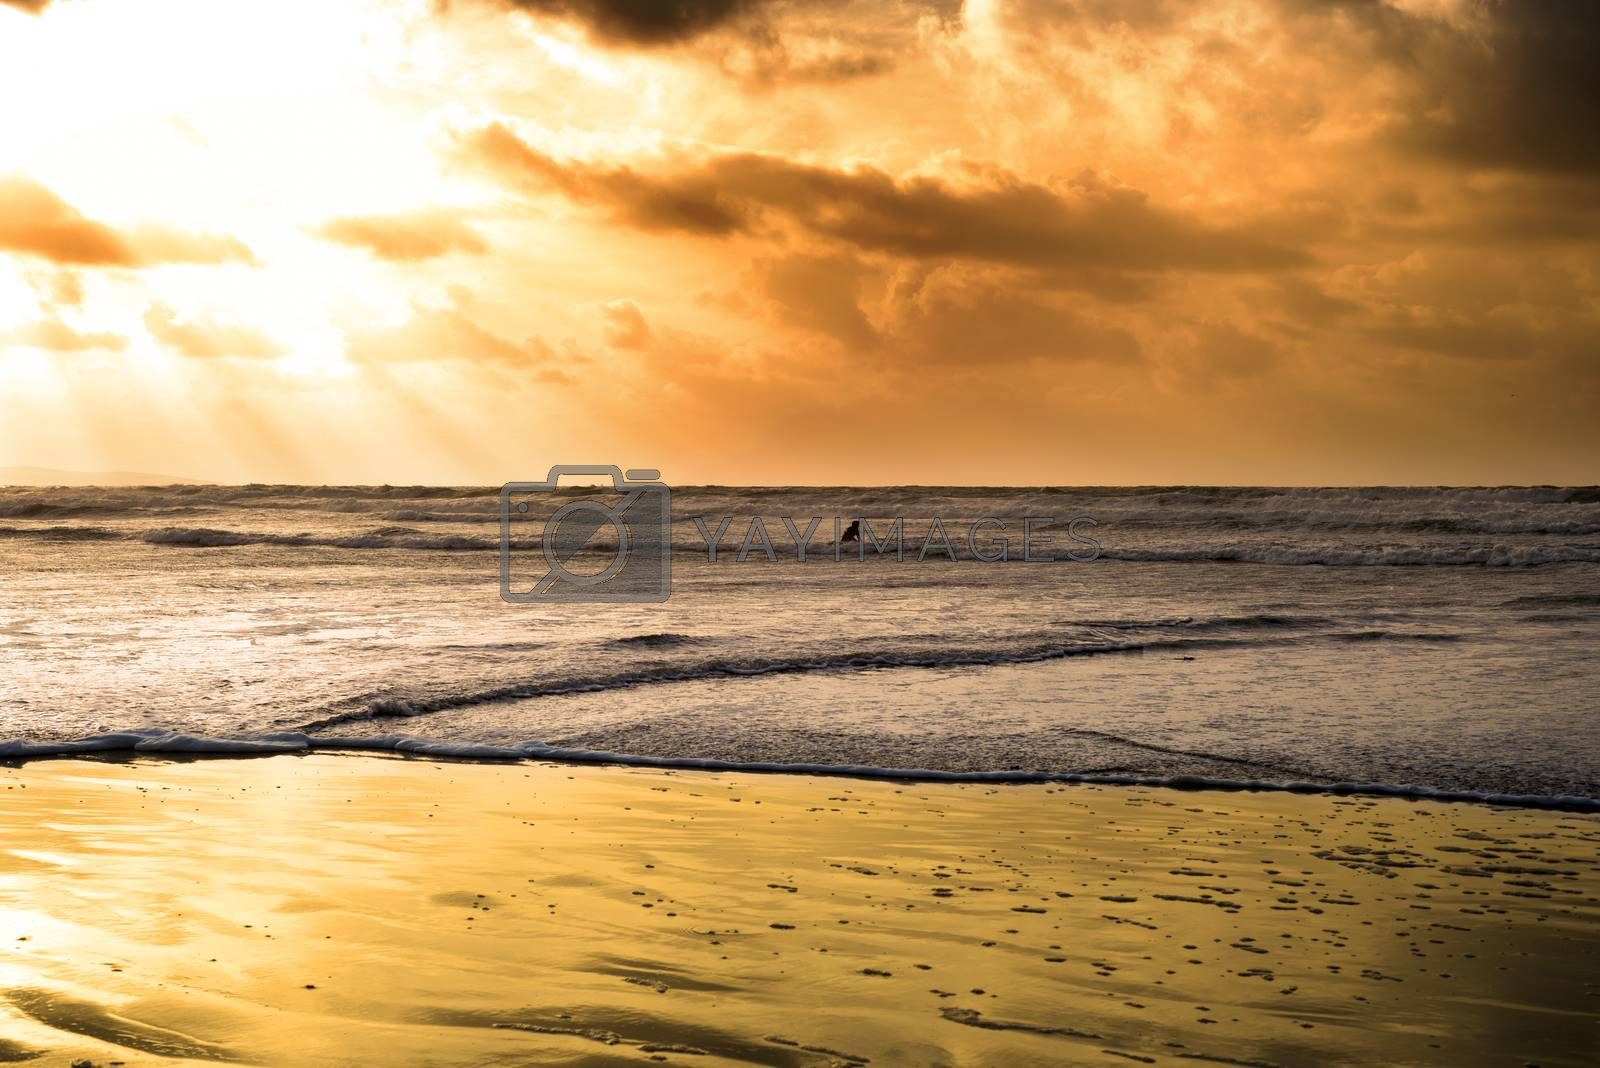 lone surfer surfing the winter waves at ballybunion beach on the wild atlantic way